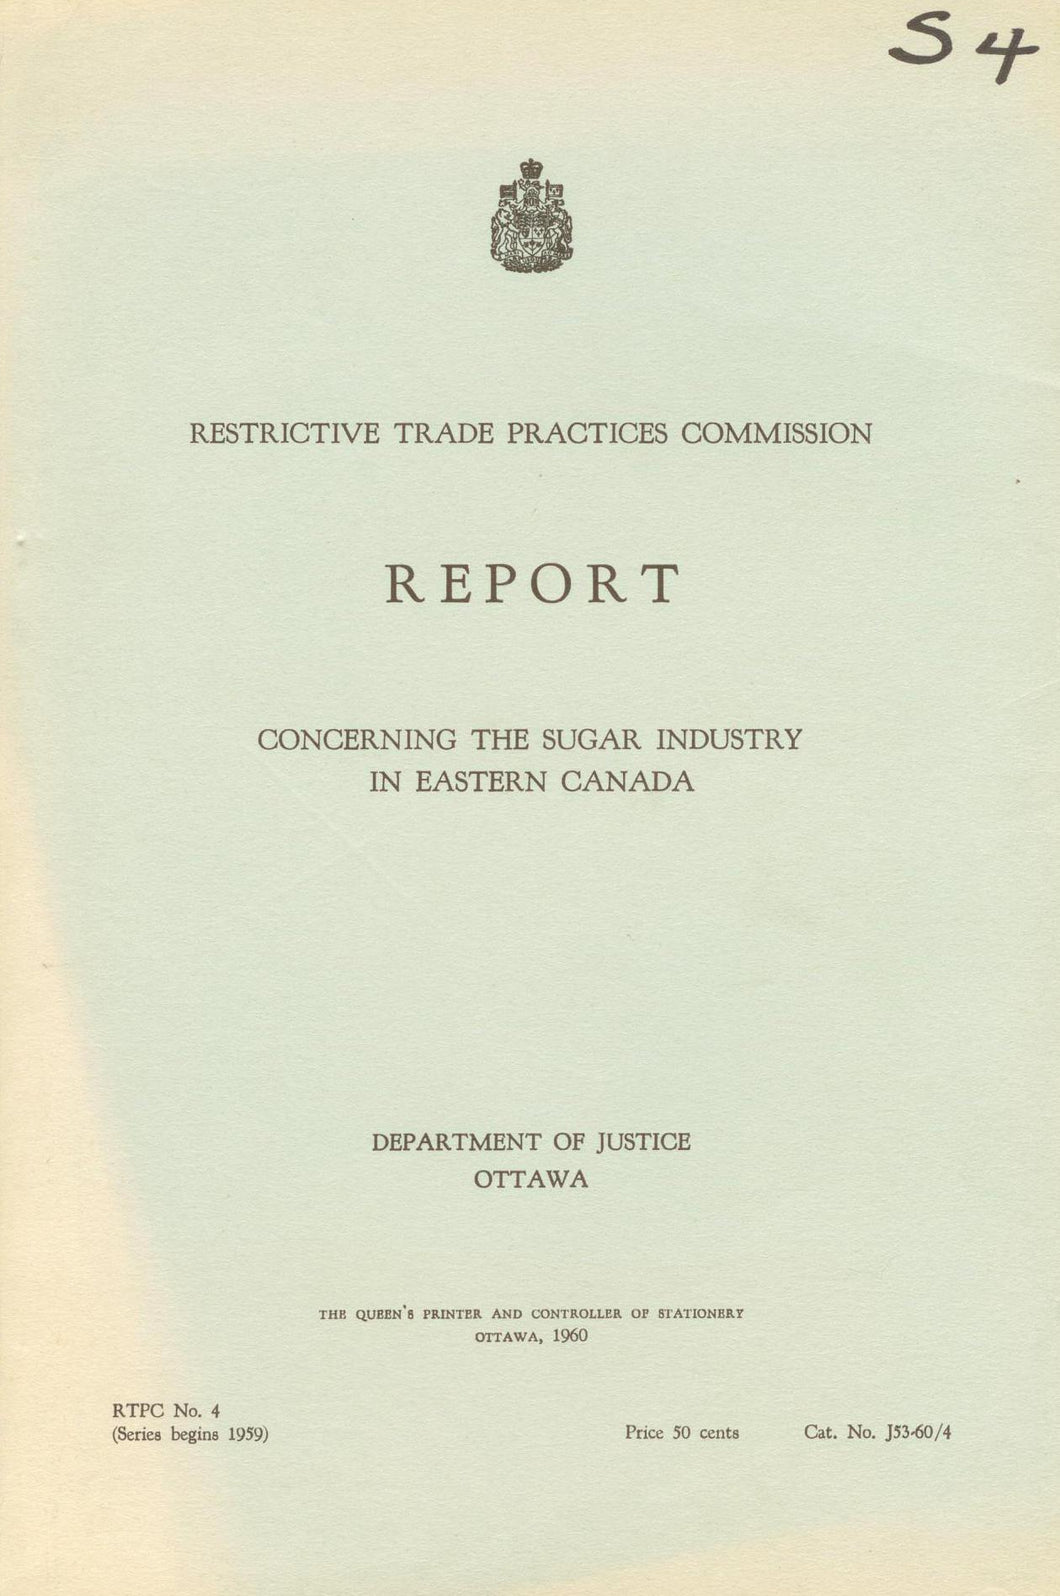 Report Concerning the Sugar Industry in Eastern Canada